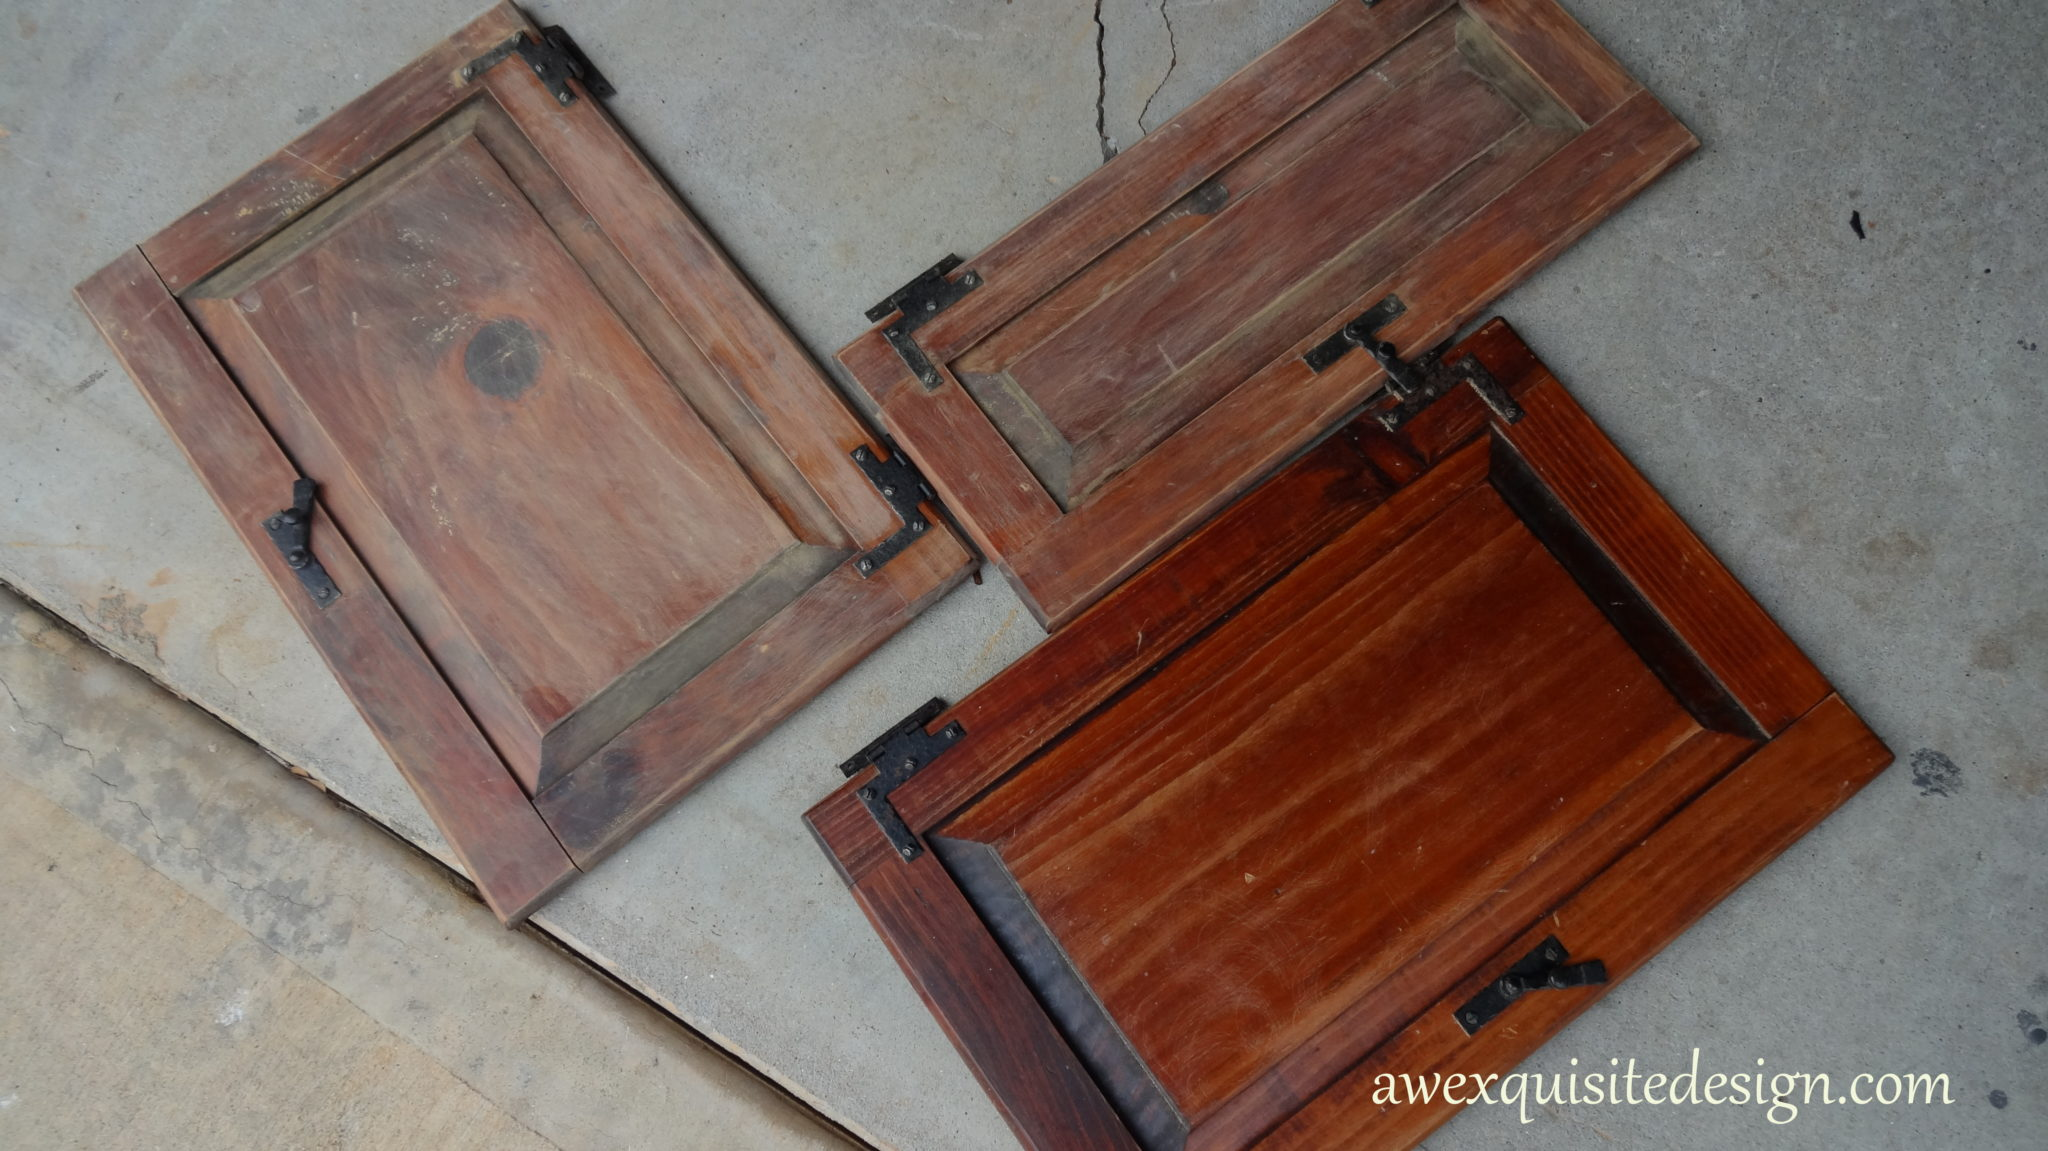 The doors --  one that is pre-sanding and two that are sanded.